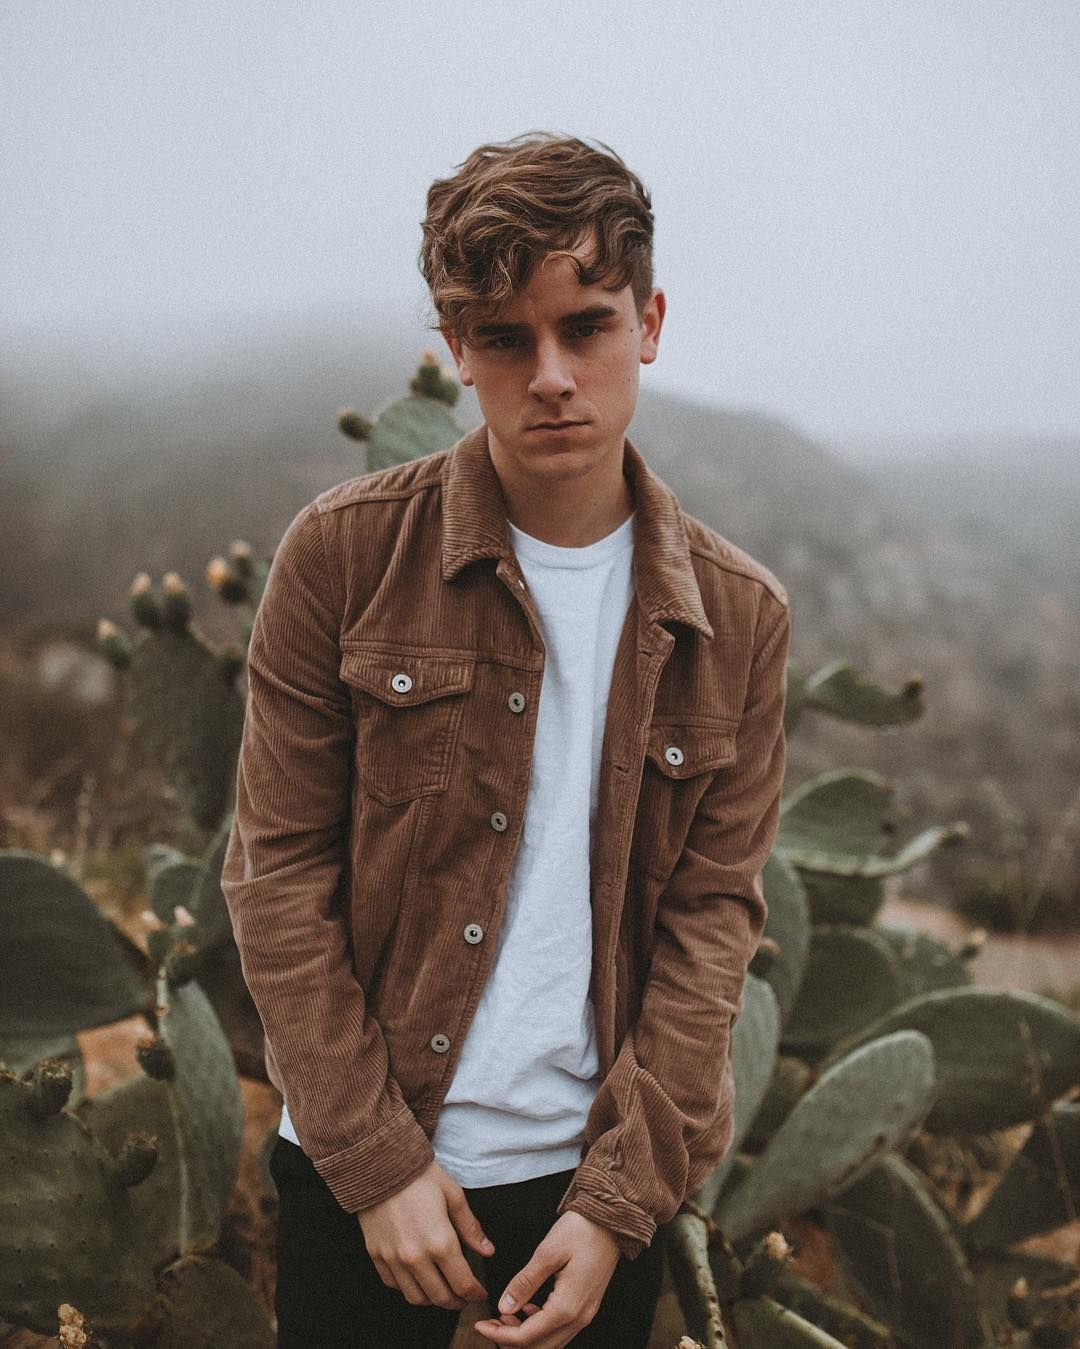 Connor Franta by ownthelight | Inspiring Photography ...